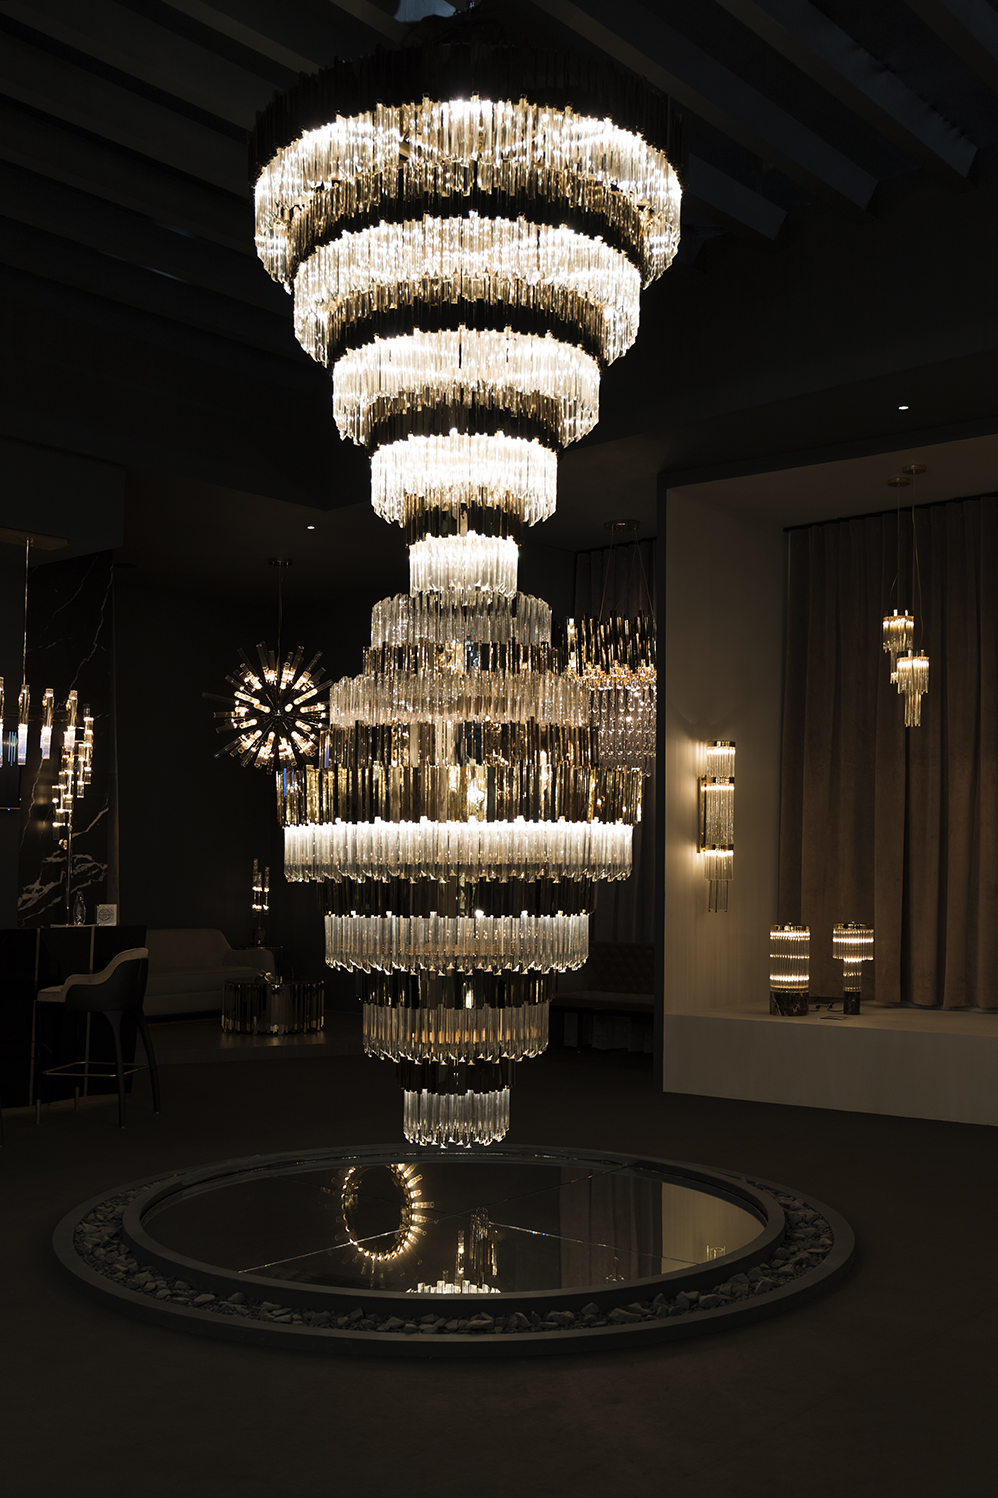 Euroluce 2019: The Must-Visit Lighting Stands Part I euroluce 2019 Euroluce 2019: The Must-Visit Lighting Stands Part I Euroluce 2019 The Must Visit Lighting Stands Part I 7